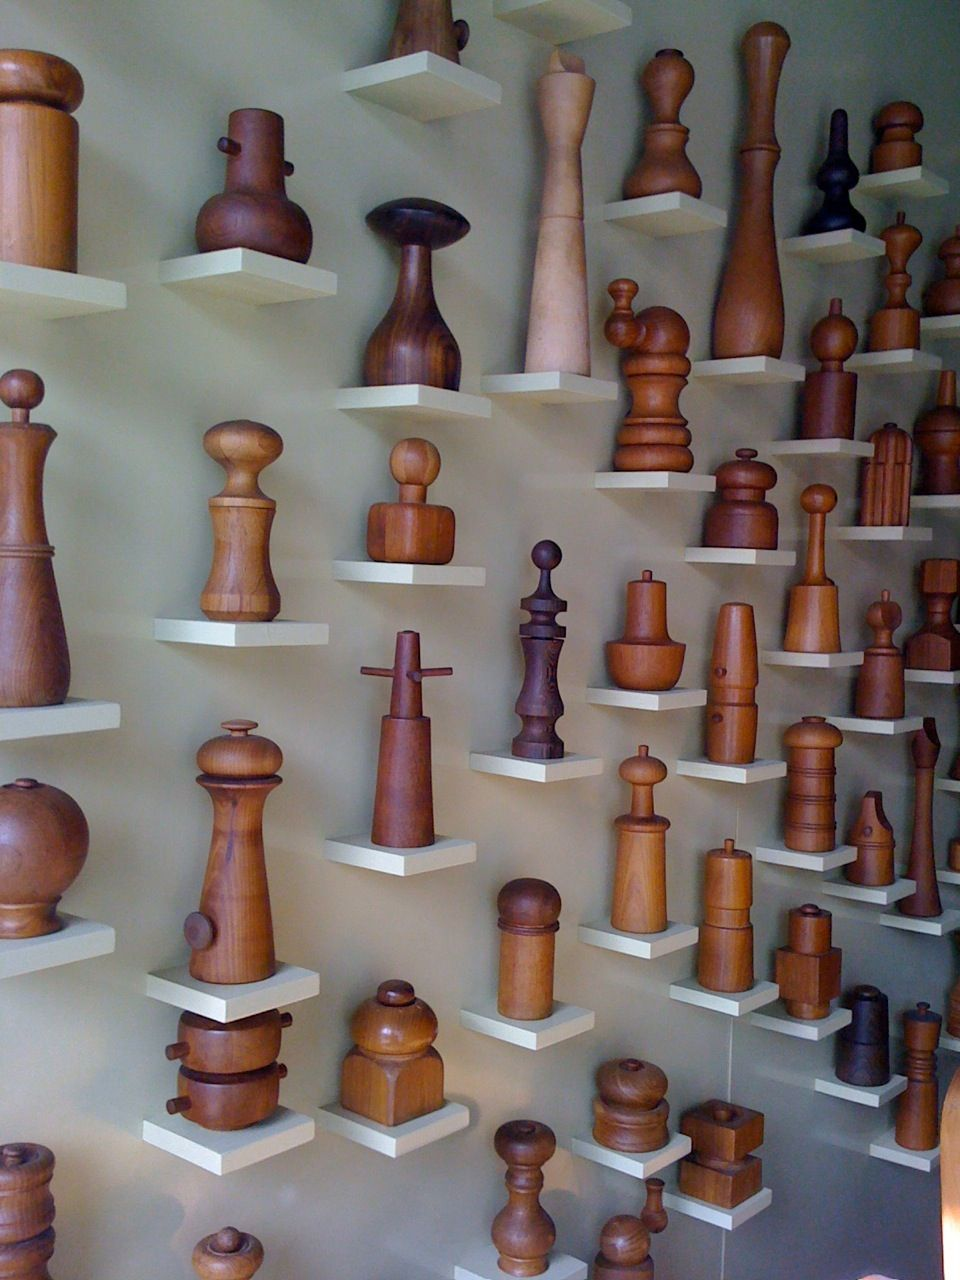 Fancy Pepper Grinder Dansk Pepper Mill Collection At The Sam Kaufman Gallery In La